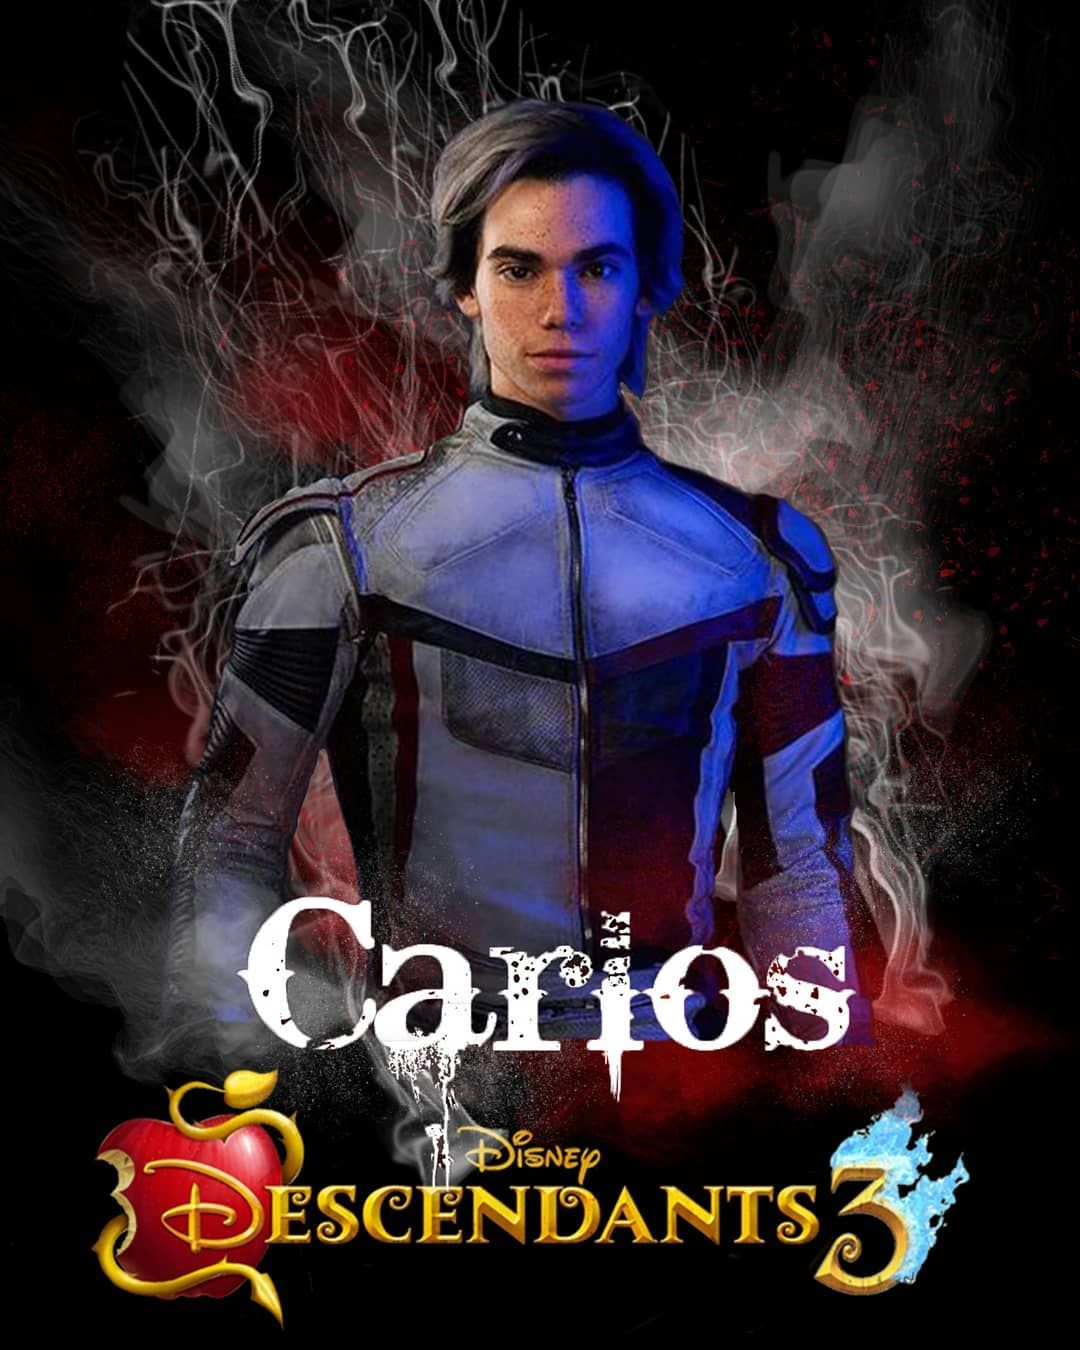 Carlos New Edit Repost Please Credits Descendants Descendantsunderthesea Desc Cameron Boyce Descendants Carlos Descendants Disney Descendants